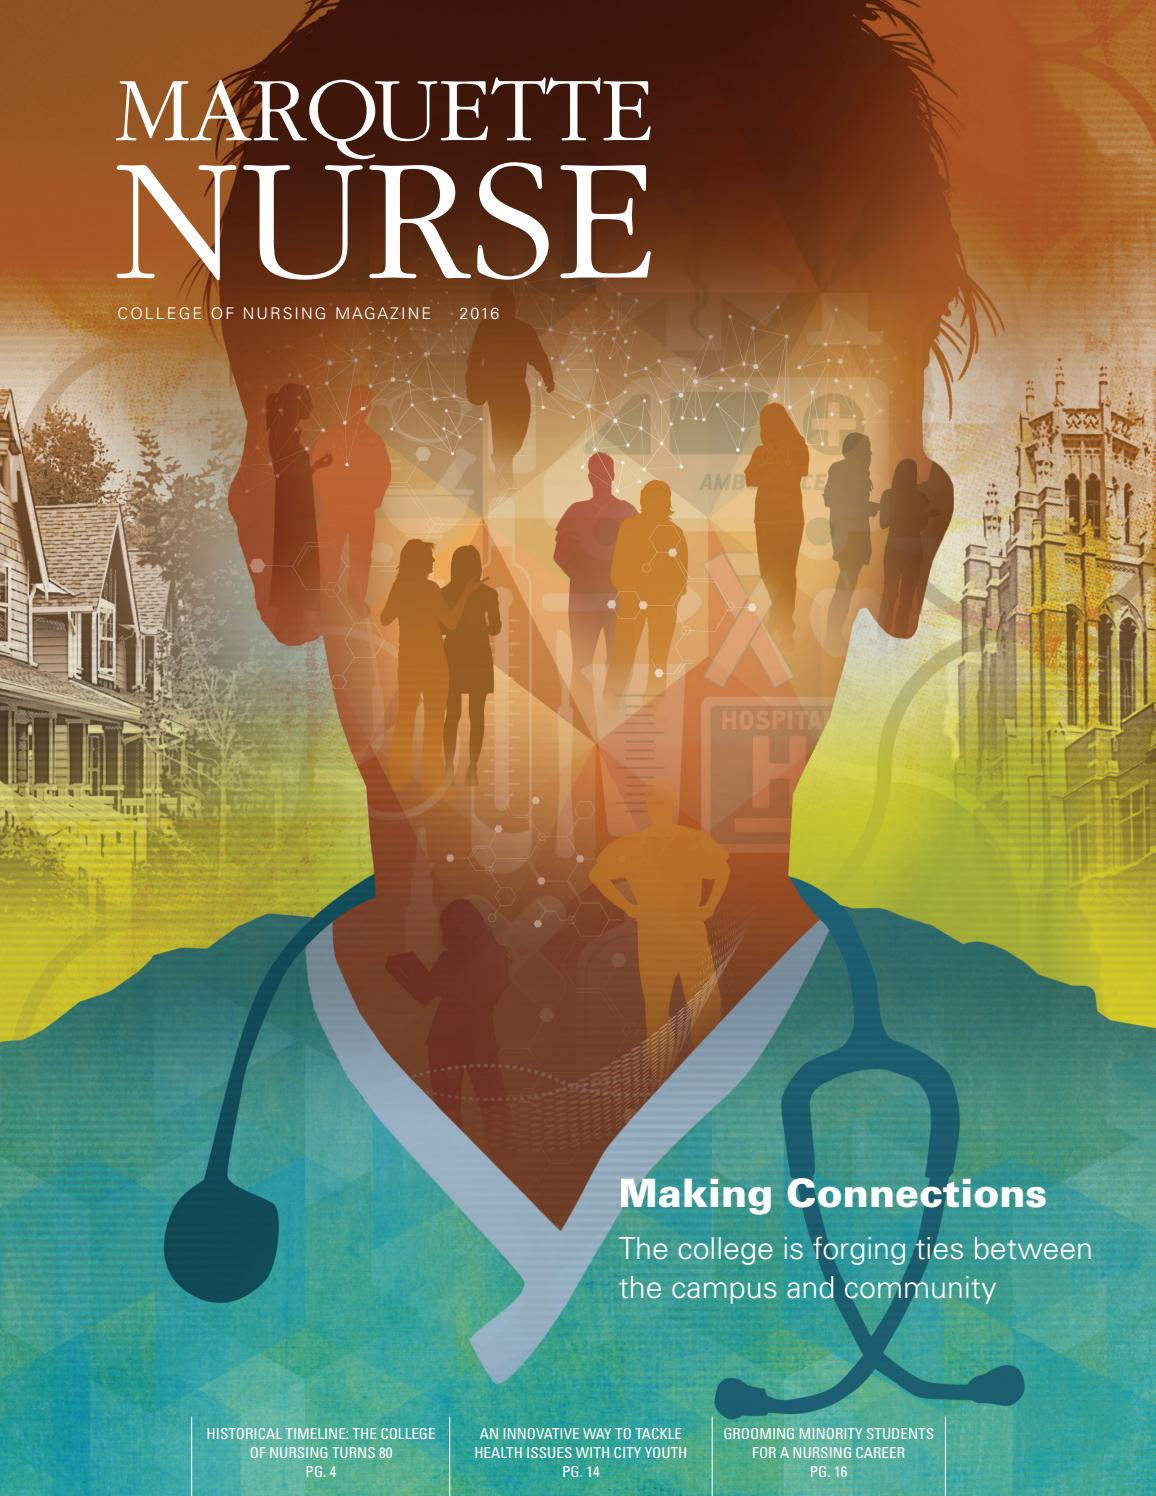 Marquette Nurse 2016 by Marquette University - issuu